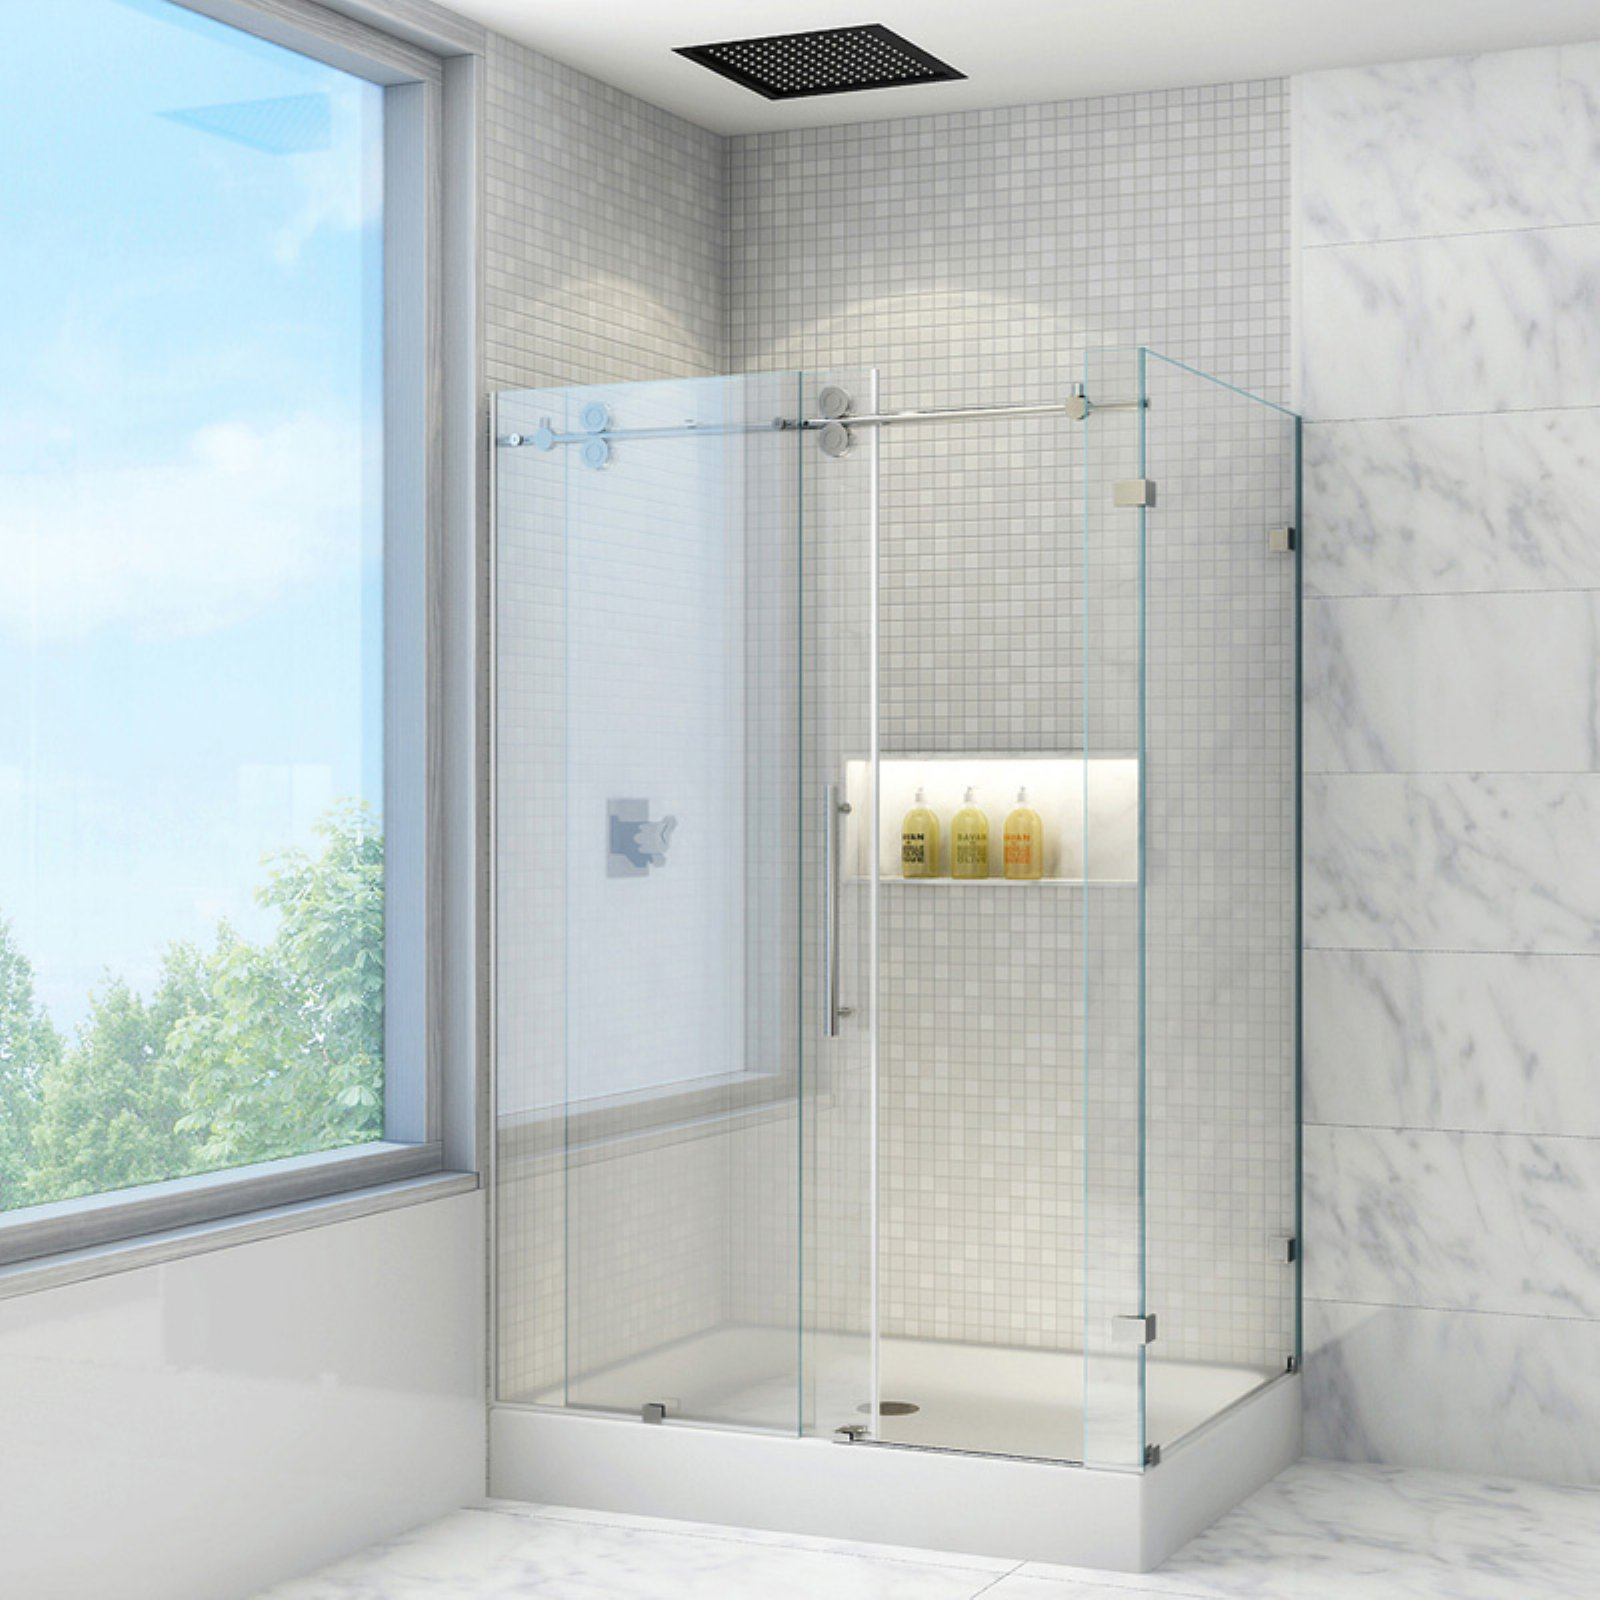 Vigo VG605148W 48.125W x 79.875H in. Clear Glass Shower Enclosure with Base